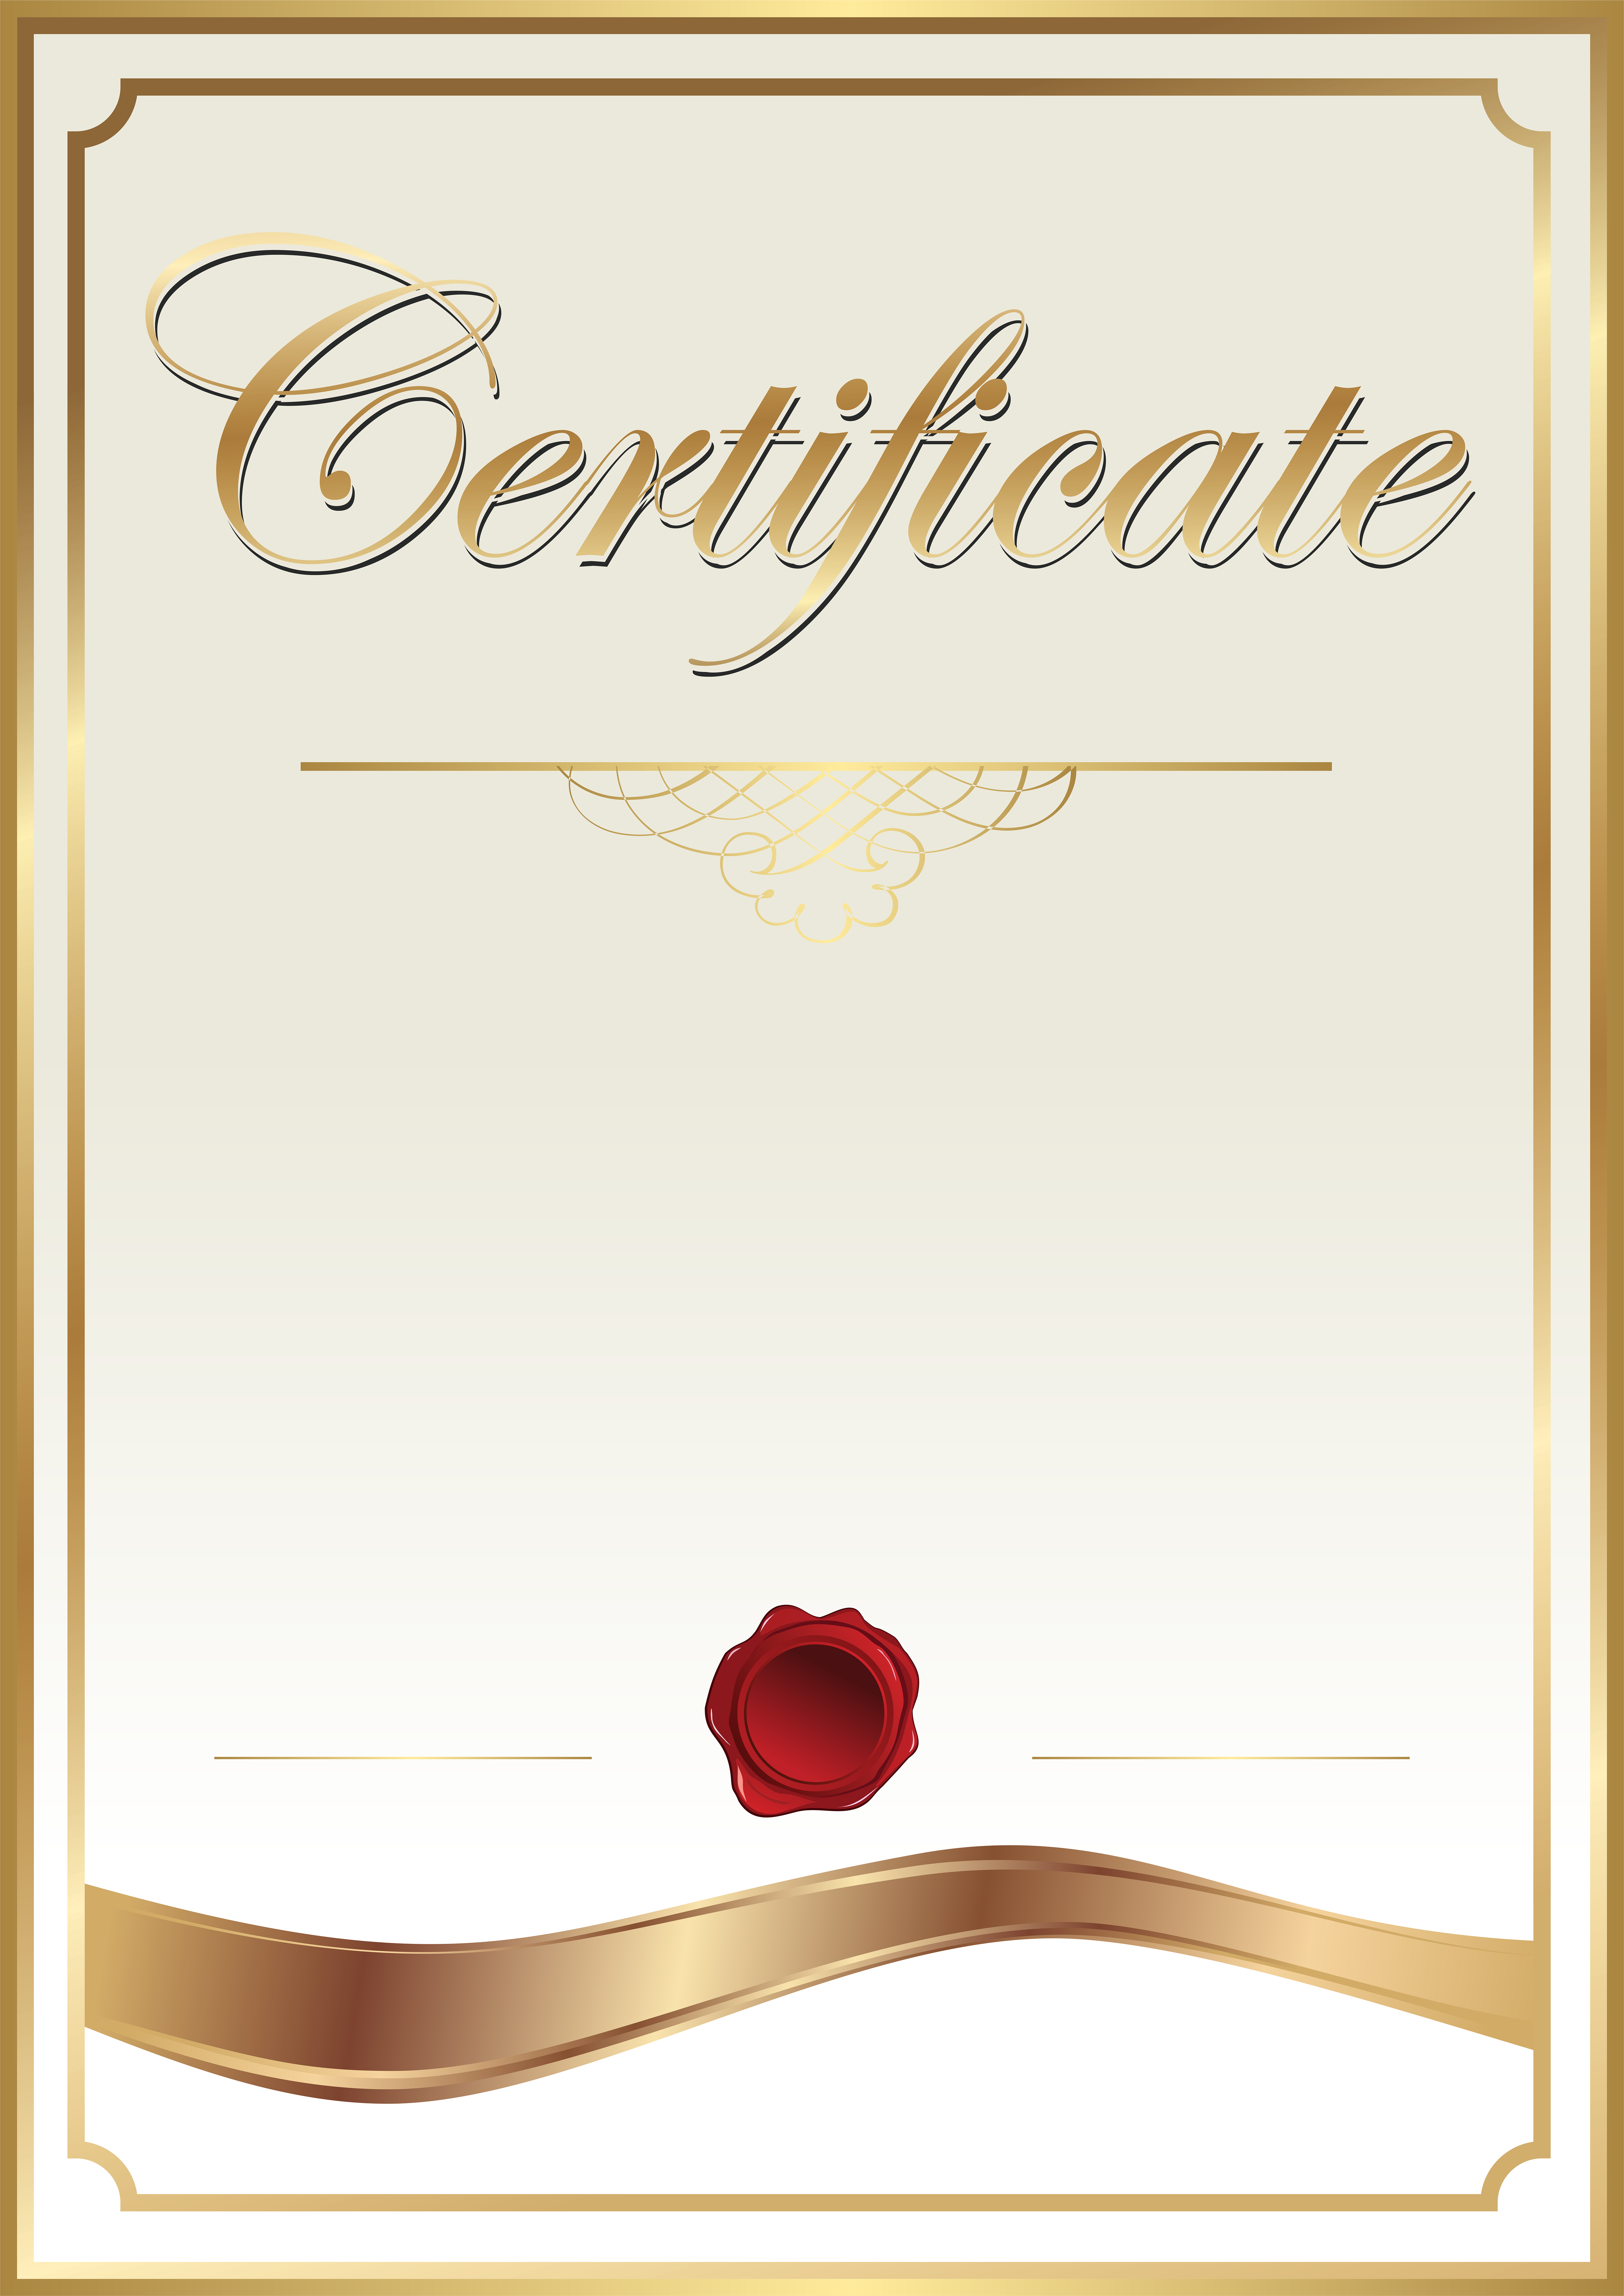 Certificate Template Clip Art PNG Image.